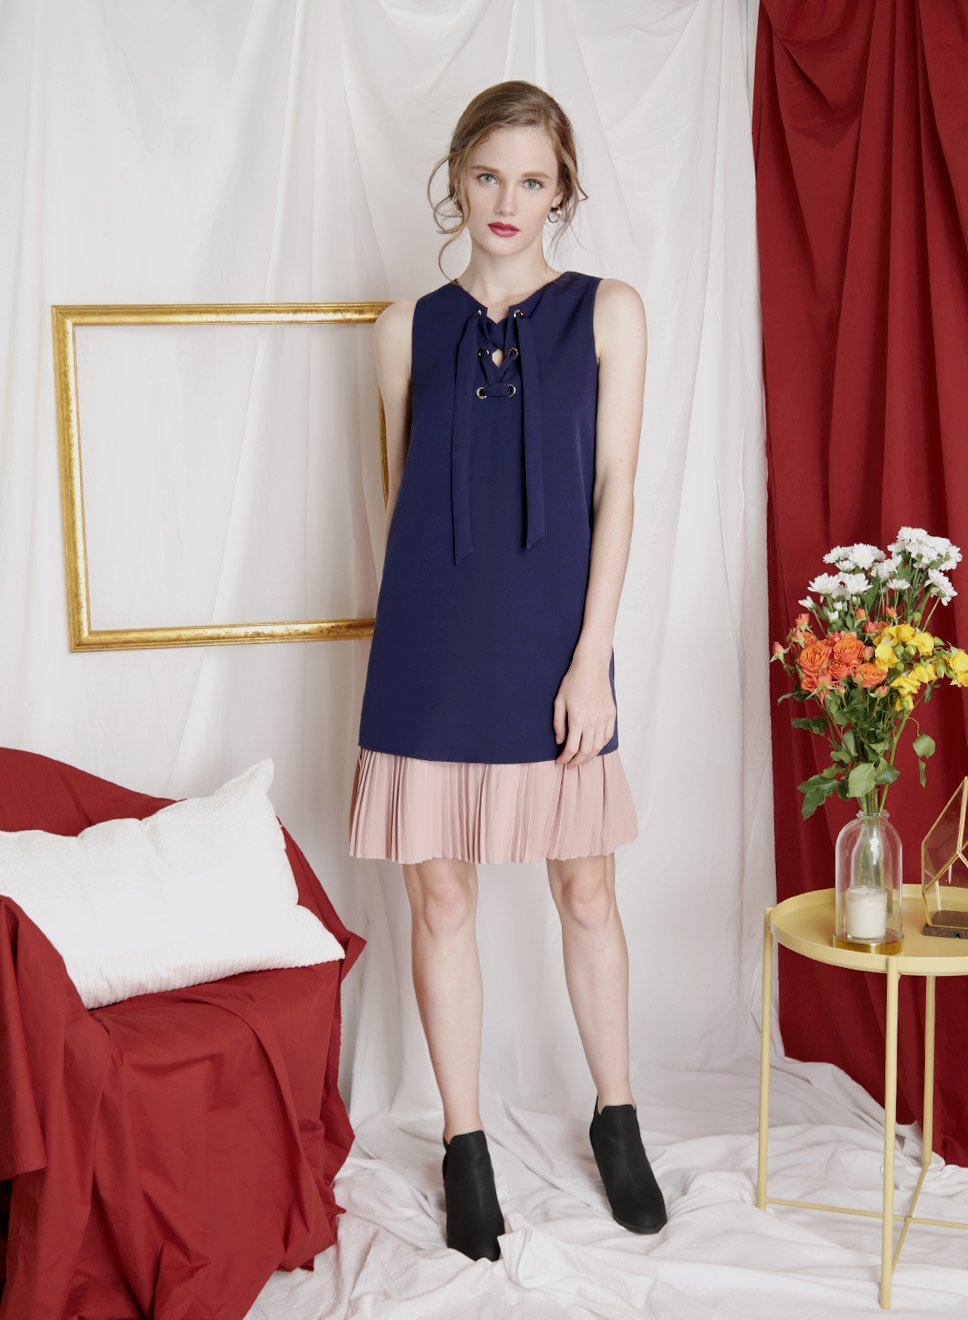 ESCAPE Lace Up Duo Tone Dress (Navy) at $ 41.50 only sold at And Well Dressed Online Fashion Store Singapore